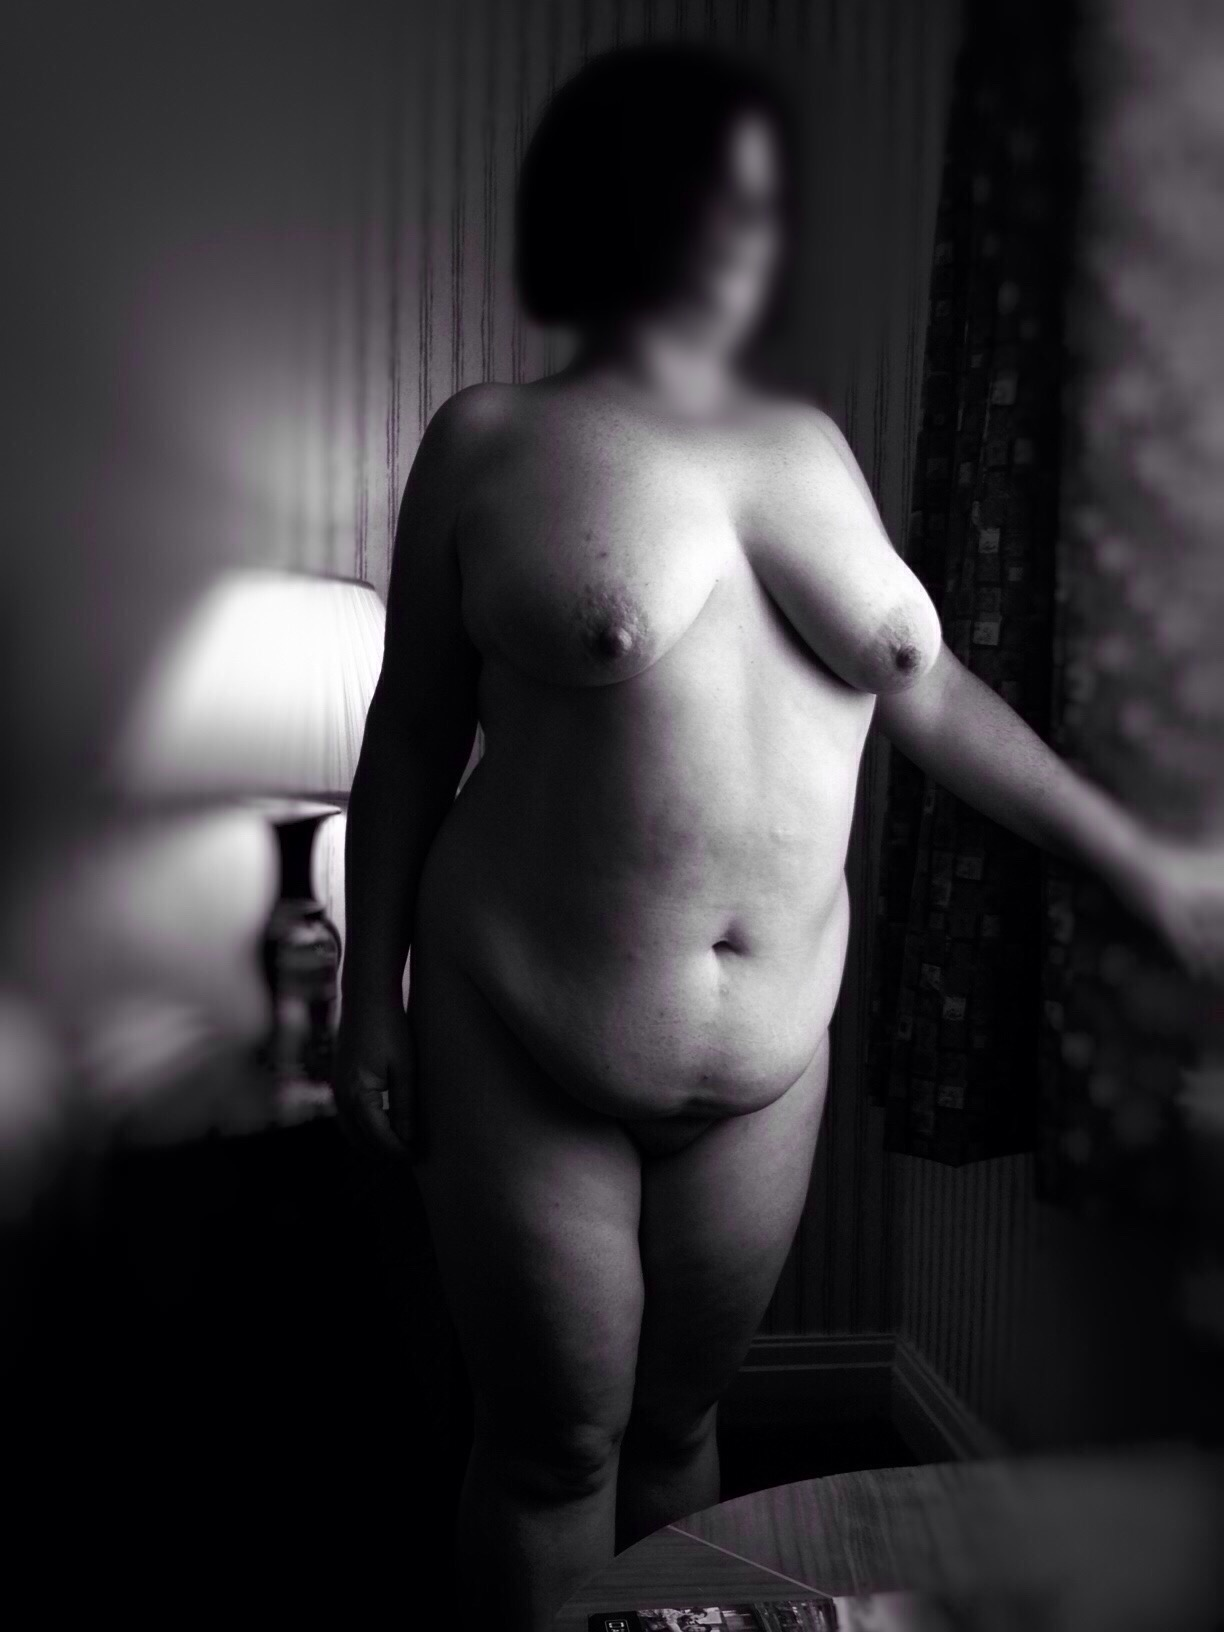 plump nude woman from a different perspective